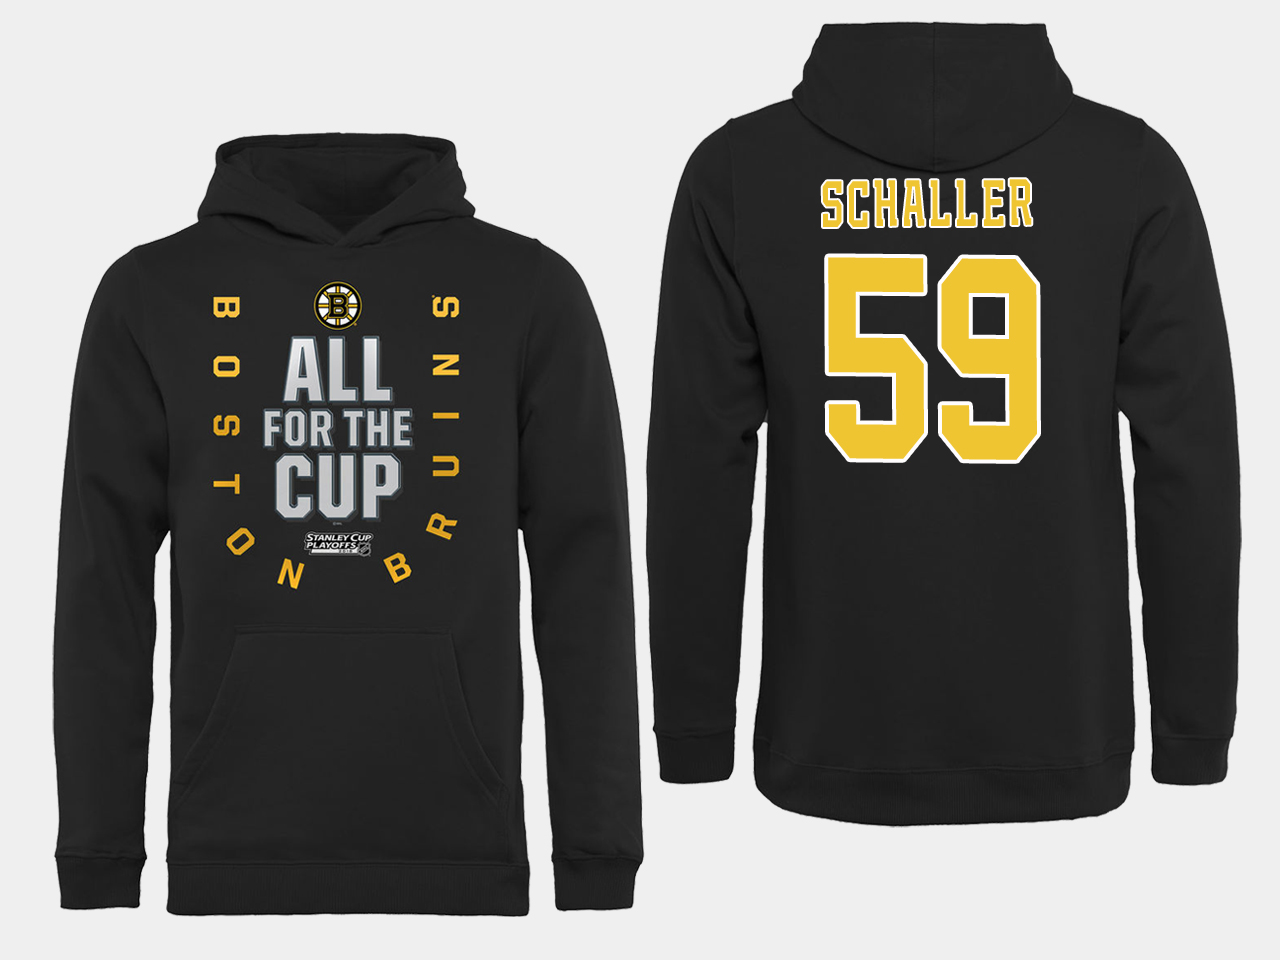 NHL Men Boston Bruins 59 Schaller Black All for the Cup Hoodie